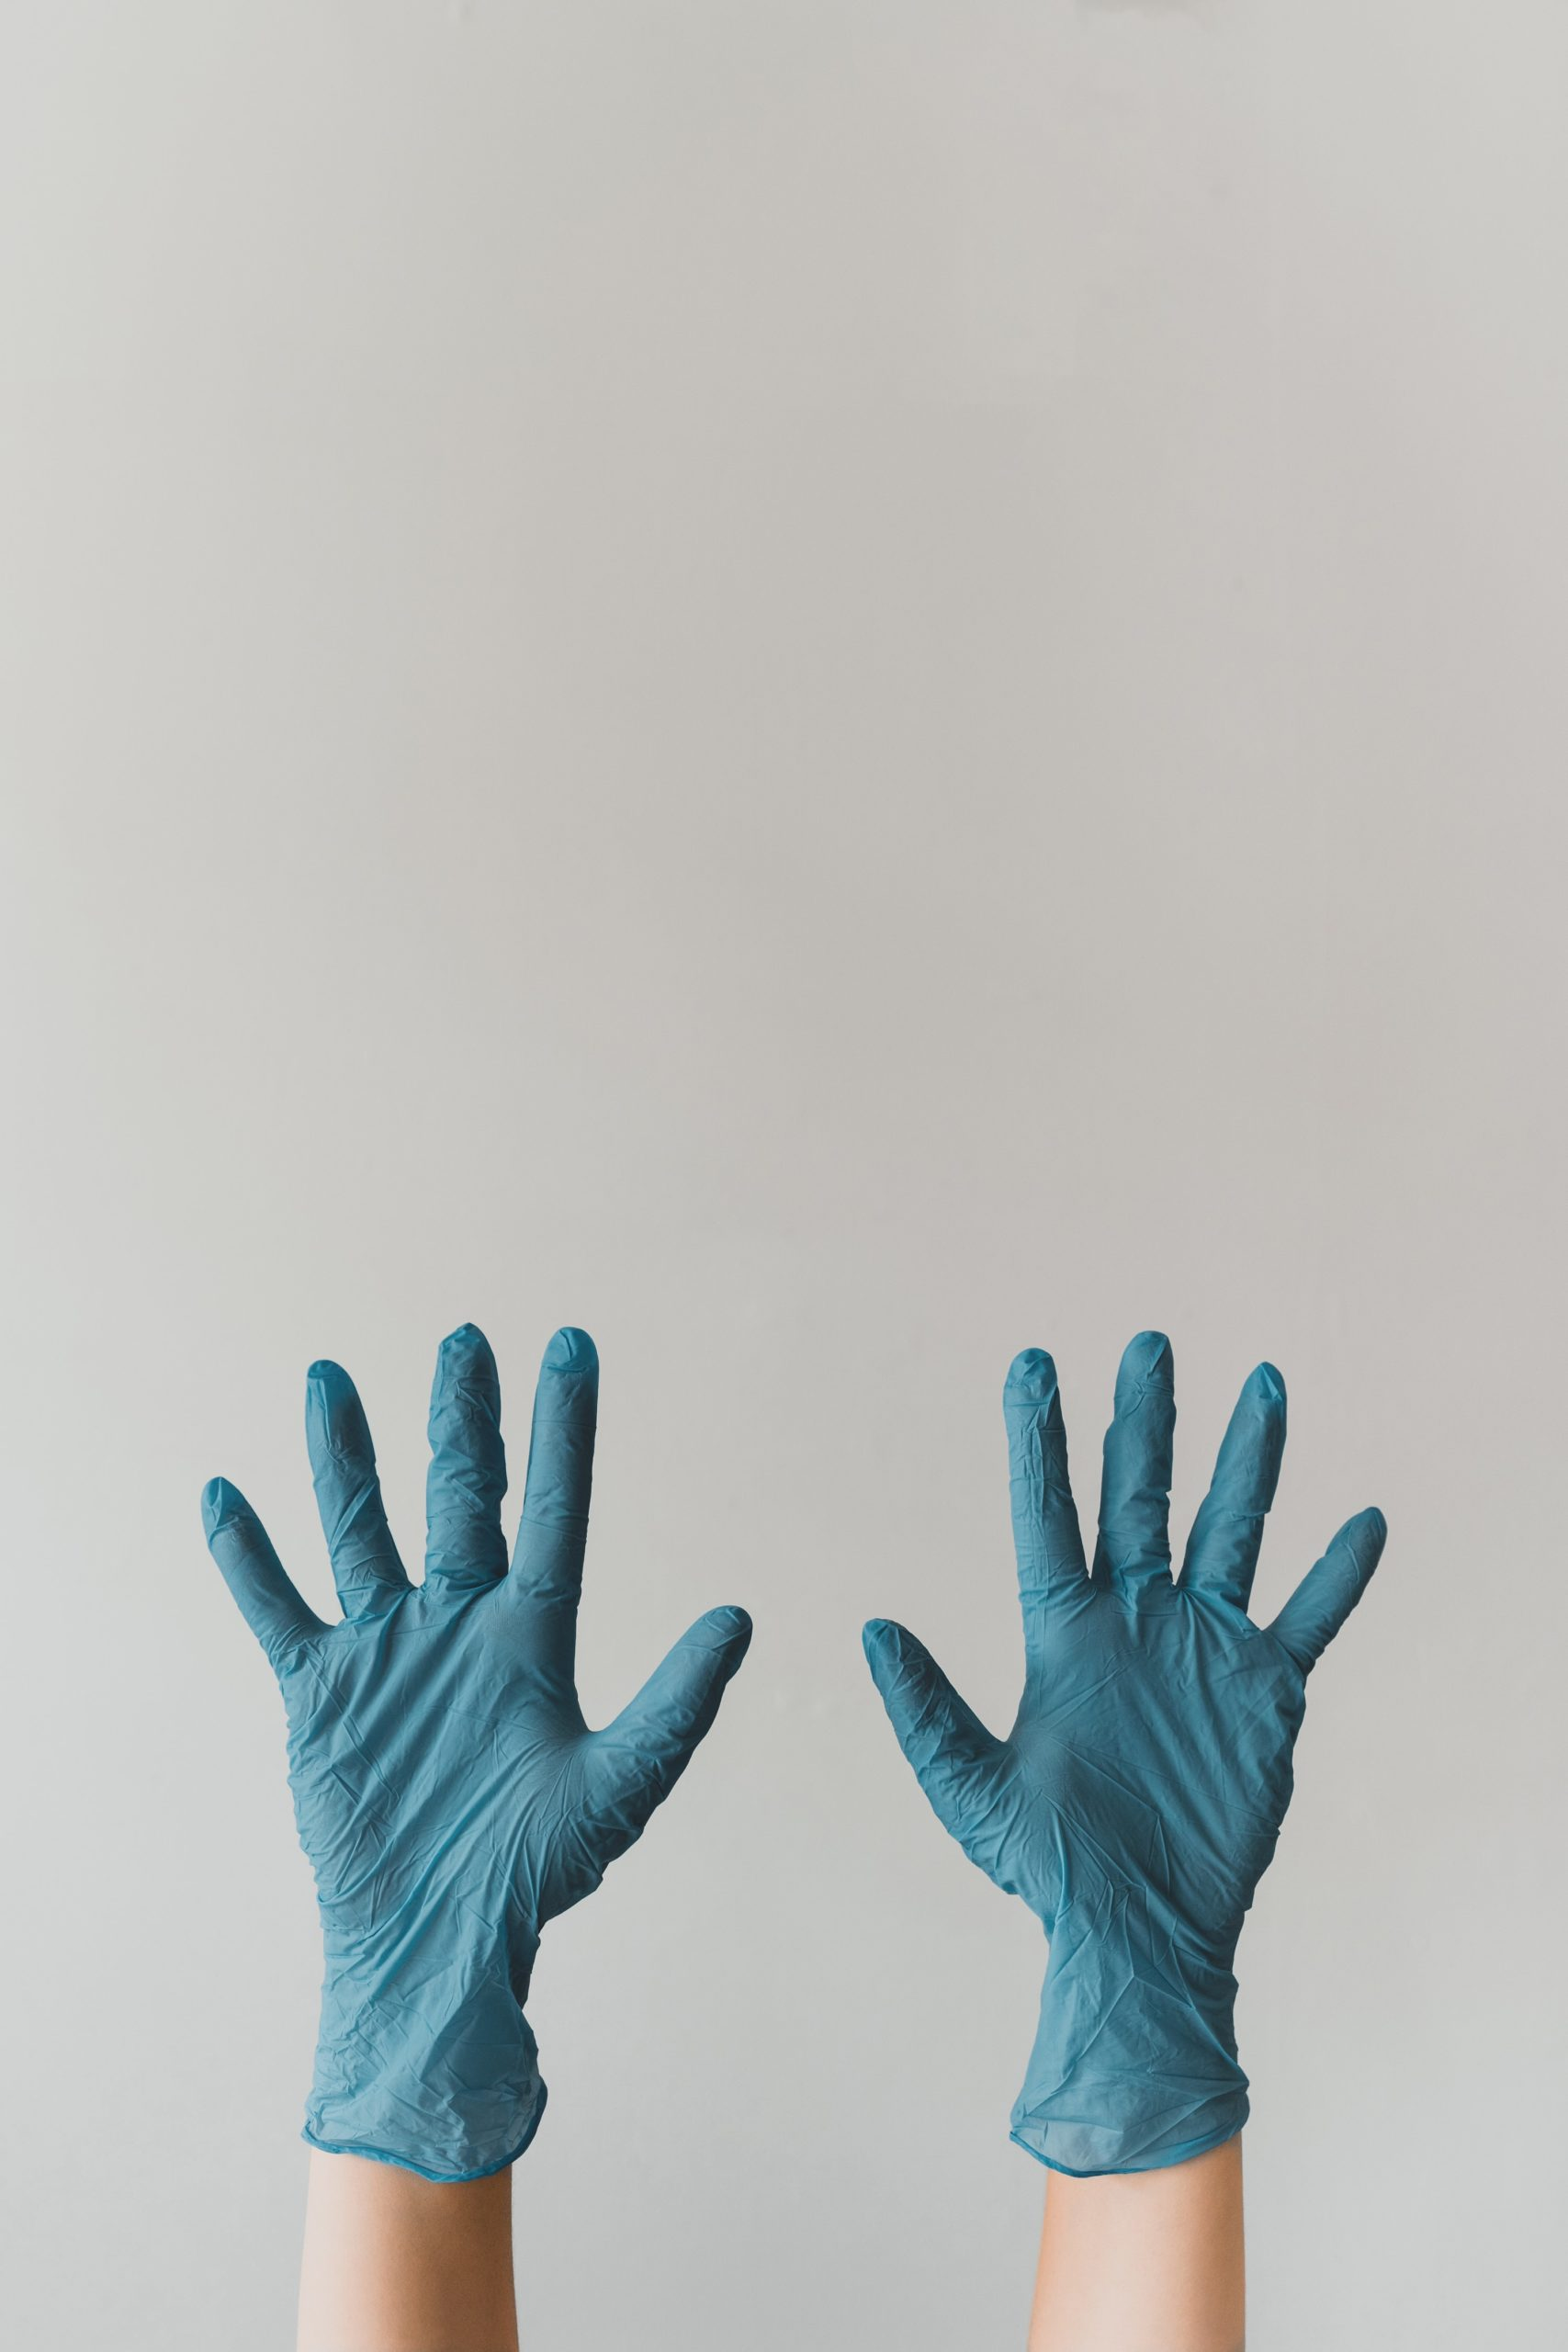 A pair of hands wearing protective gloves. Here are safety protocols you can following to reopen your business during COVID-19.